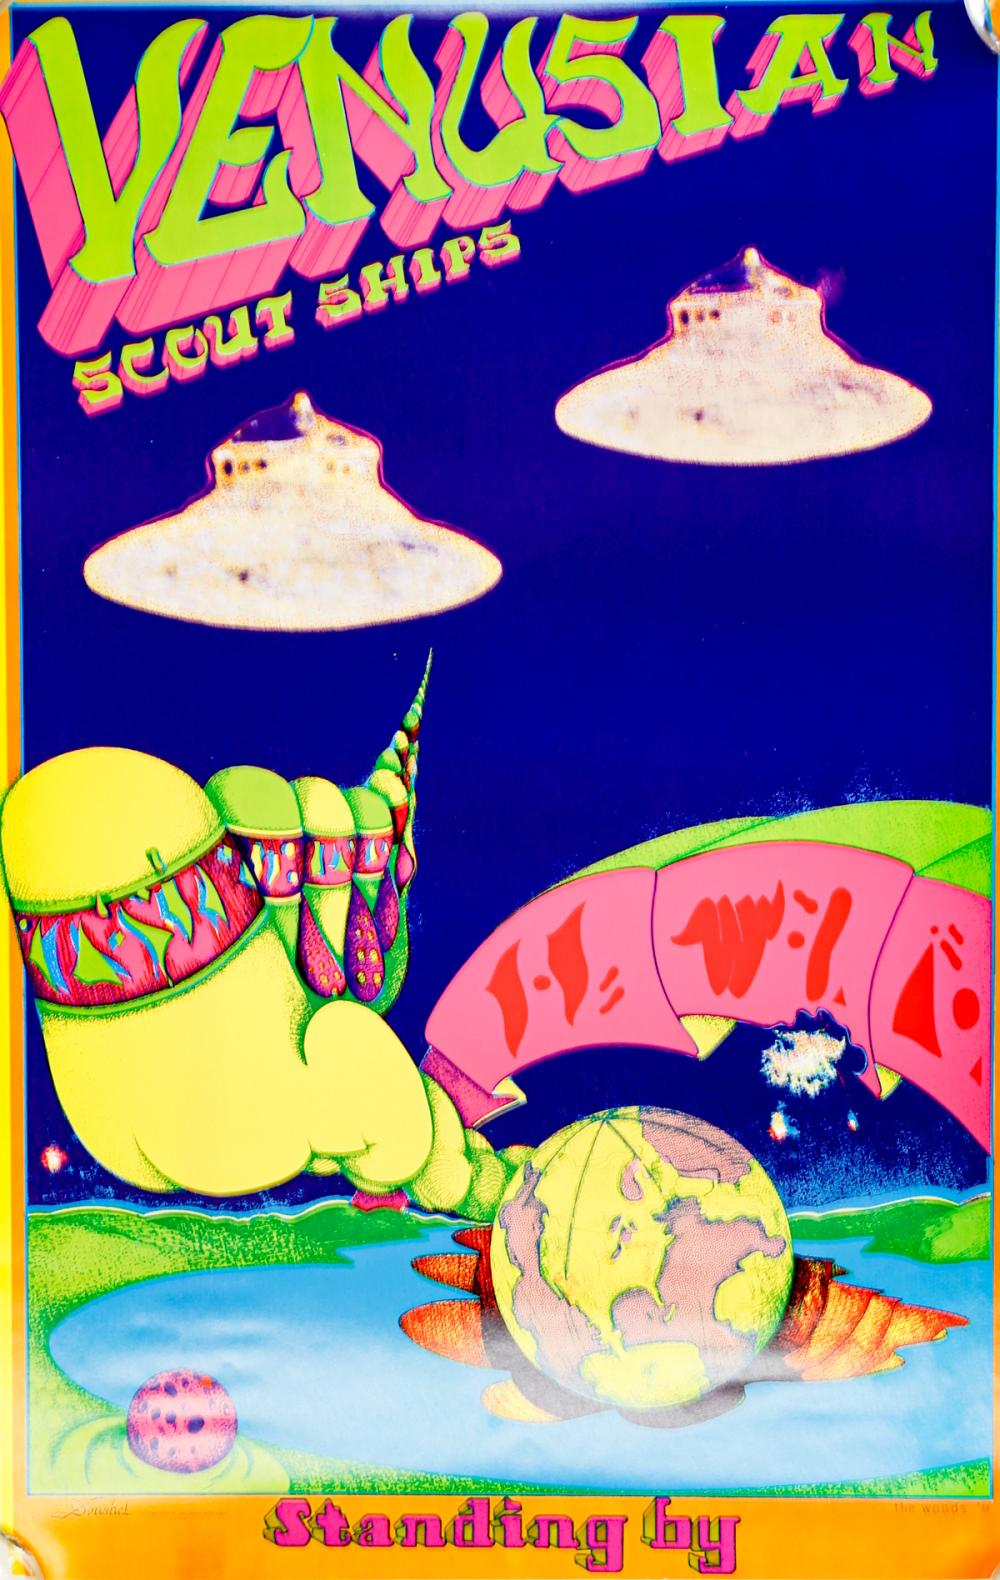 Lot 134A: Venusian Scout Ships Poster. 1967